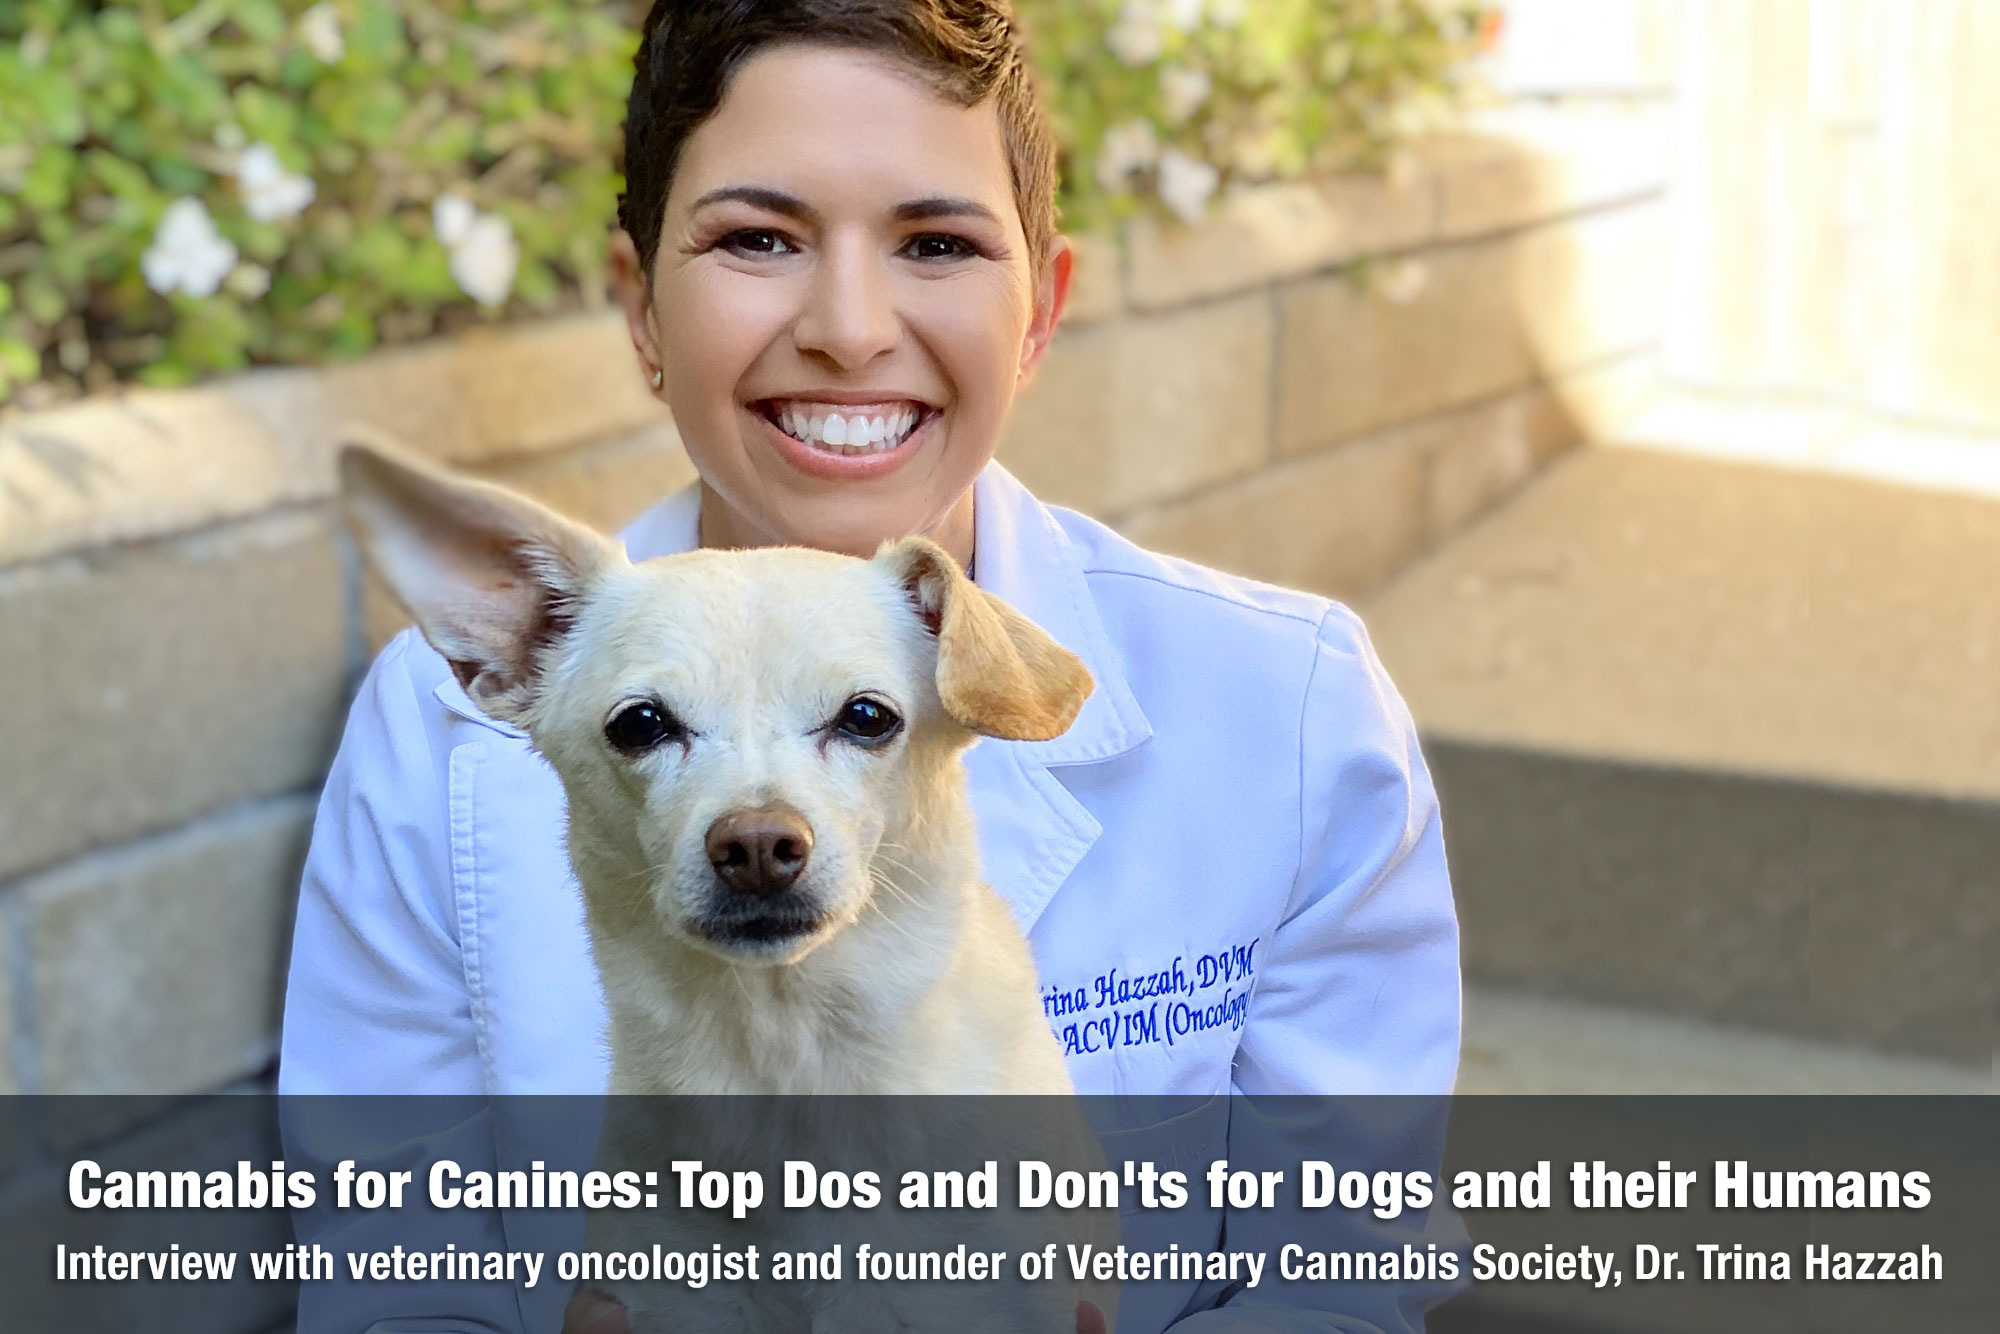 Veterinary Oncologist Dr. Trina Hazzah posing with her dog on The Cannabis Reporter Radio Show hosted by Snowden Bishop